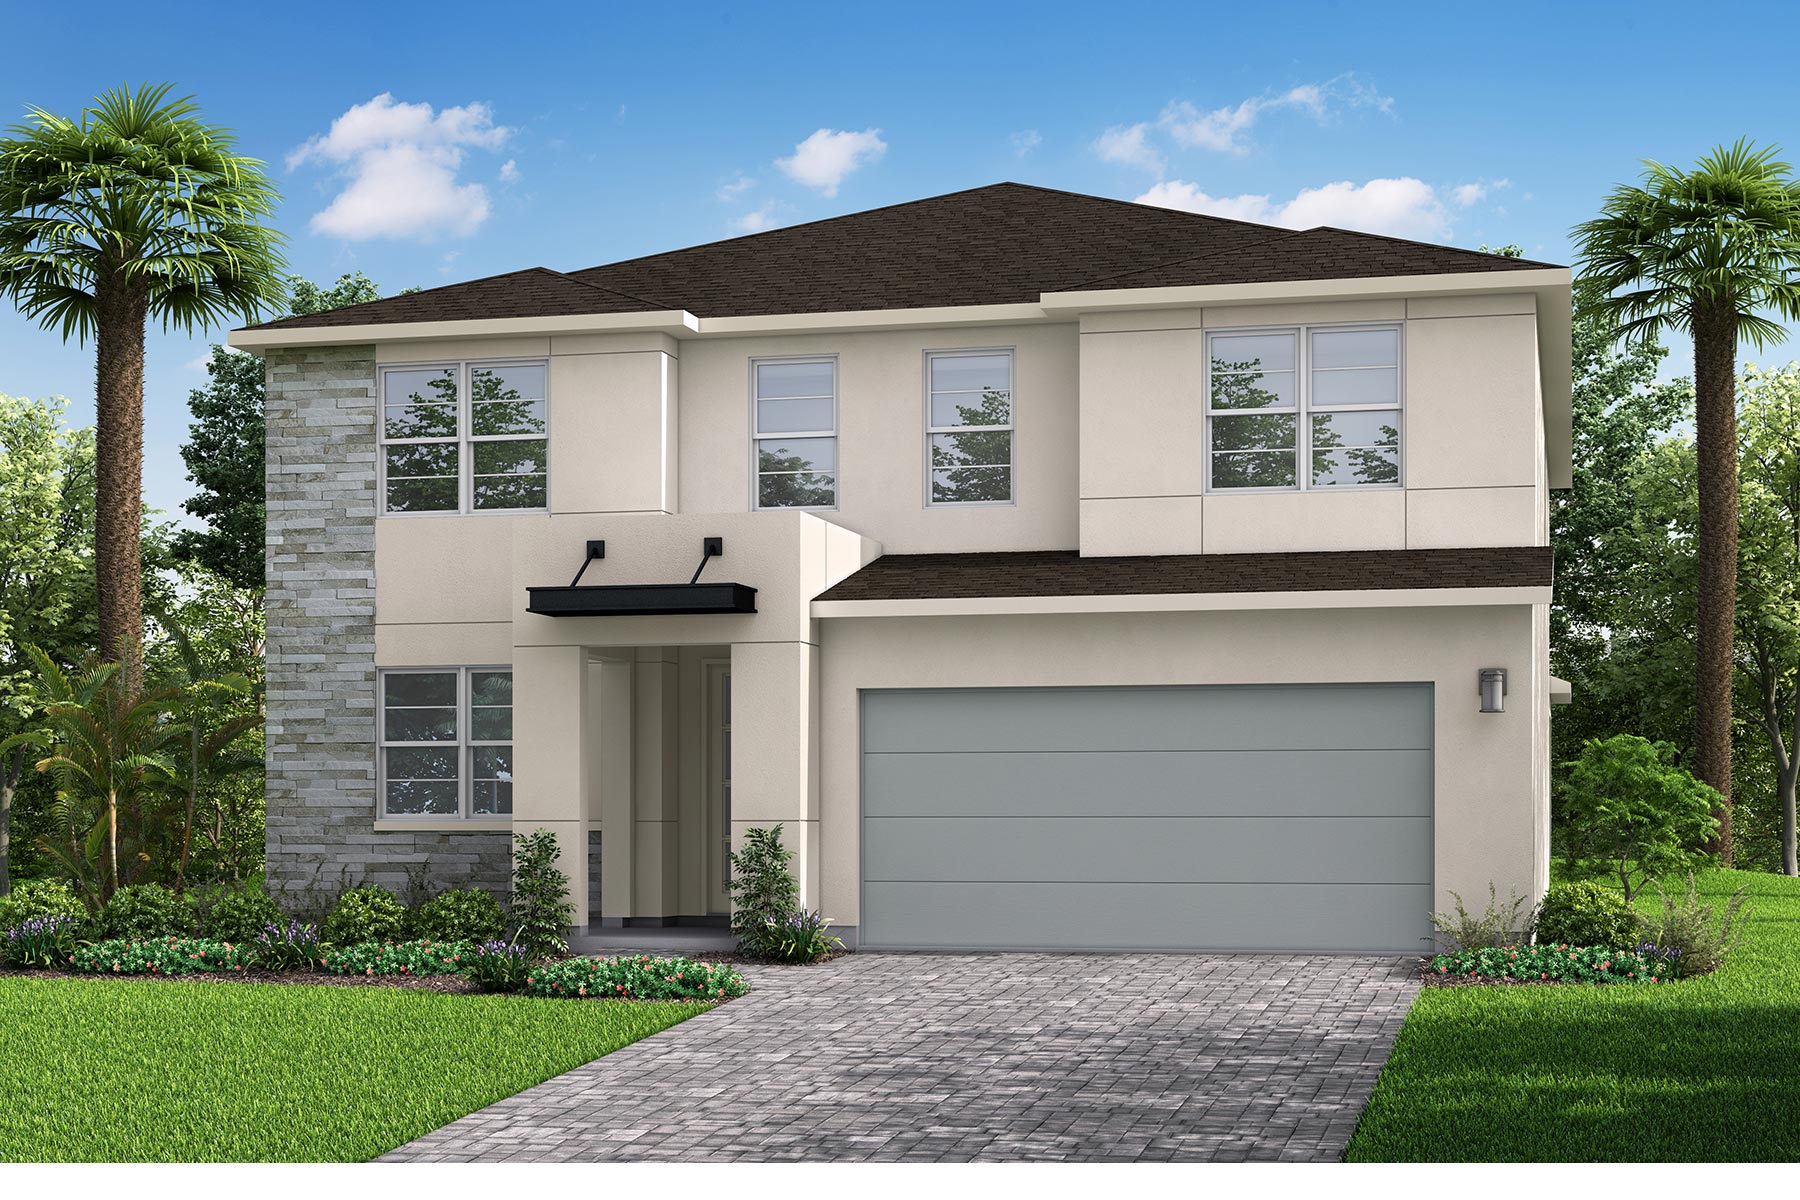 Quinton Plan Elevation Front at Parkview at Long Lake Ranch in Lutz Florida by Mattamy Homes